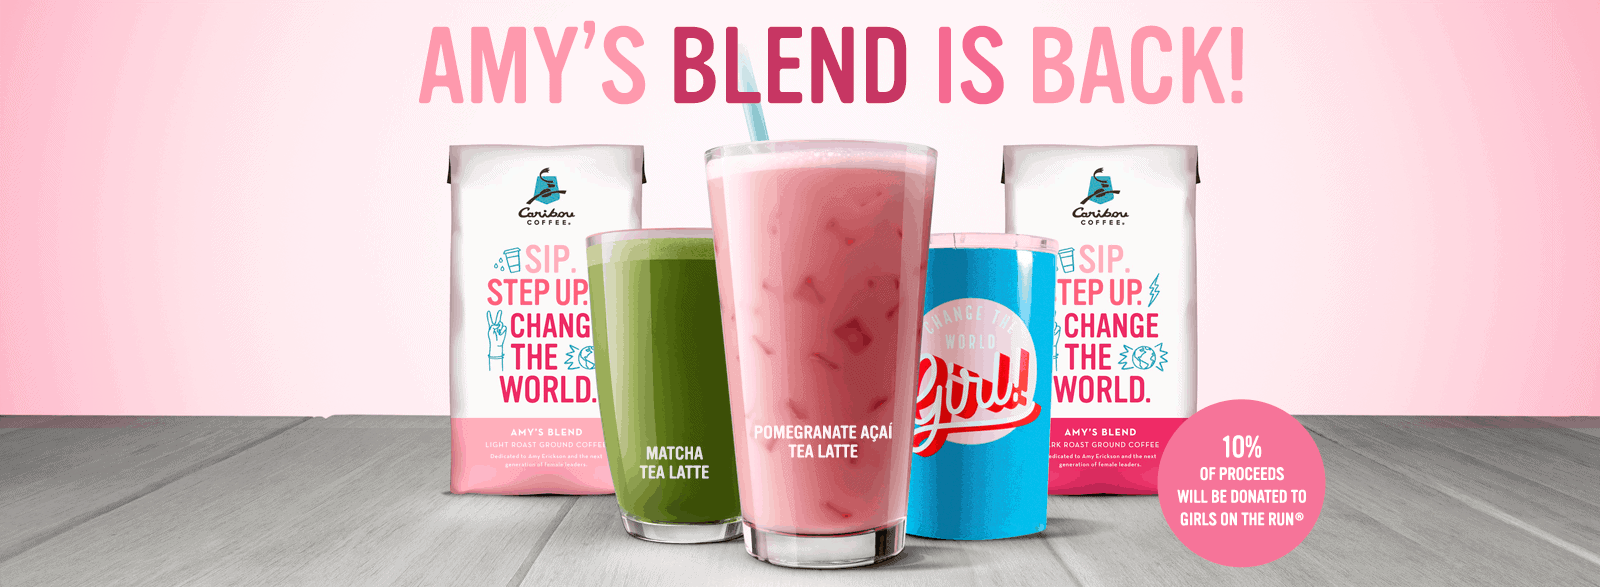 Caribou Coffee Amy's Blend is Back!